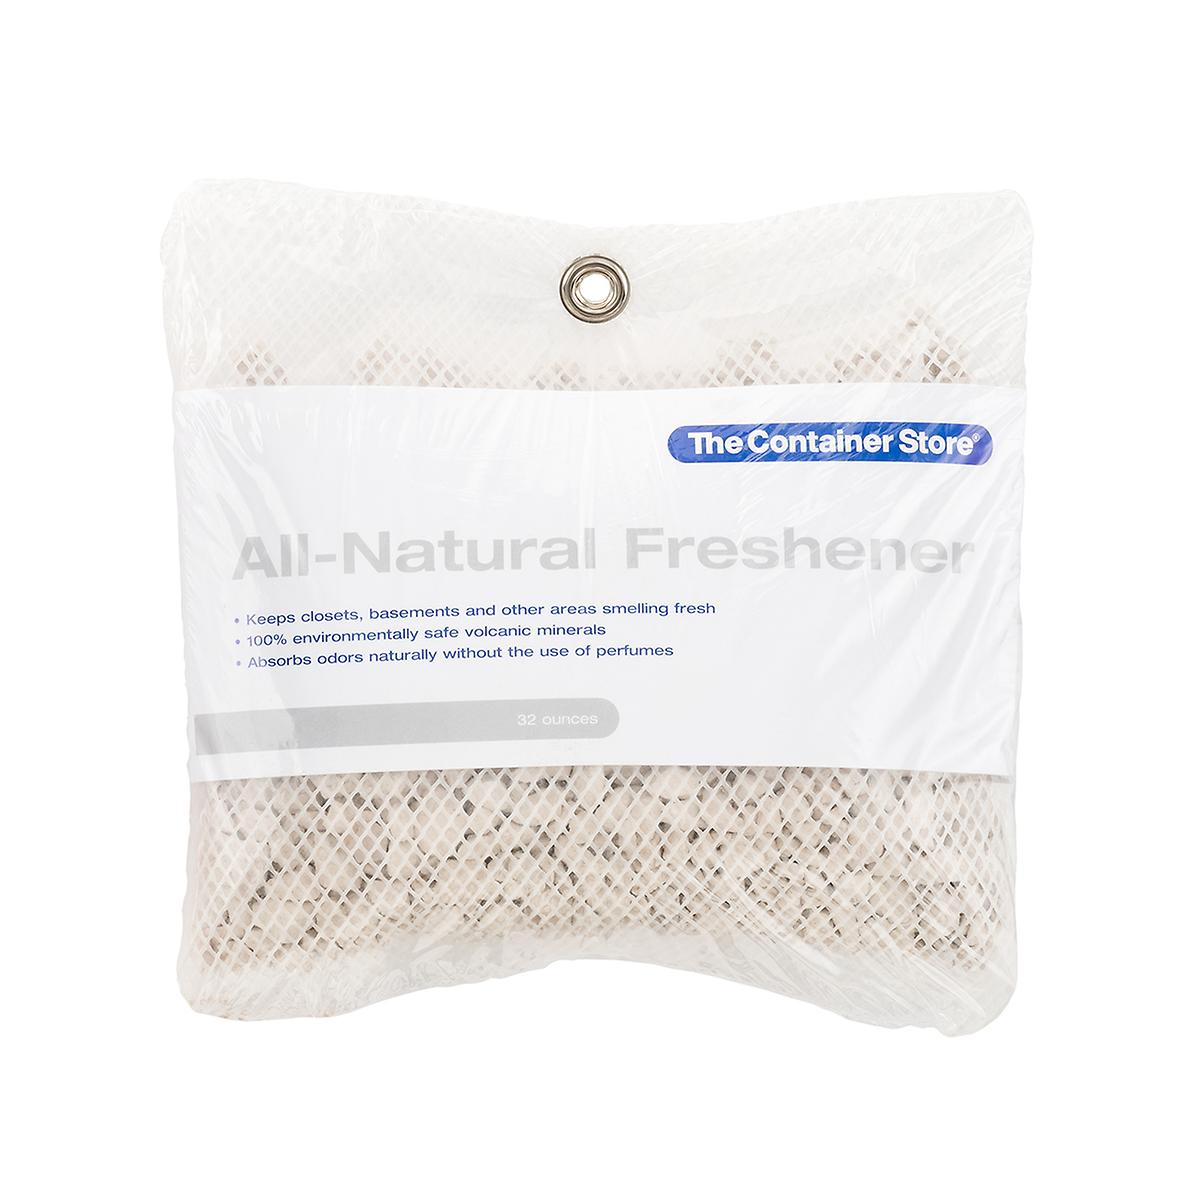 All Natural Freshener The Container Store